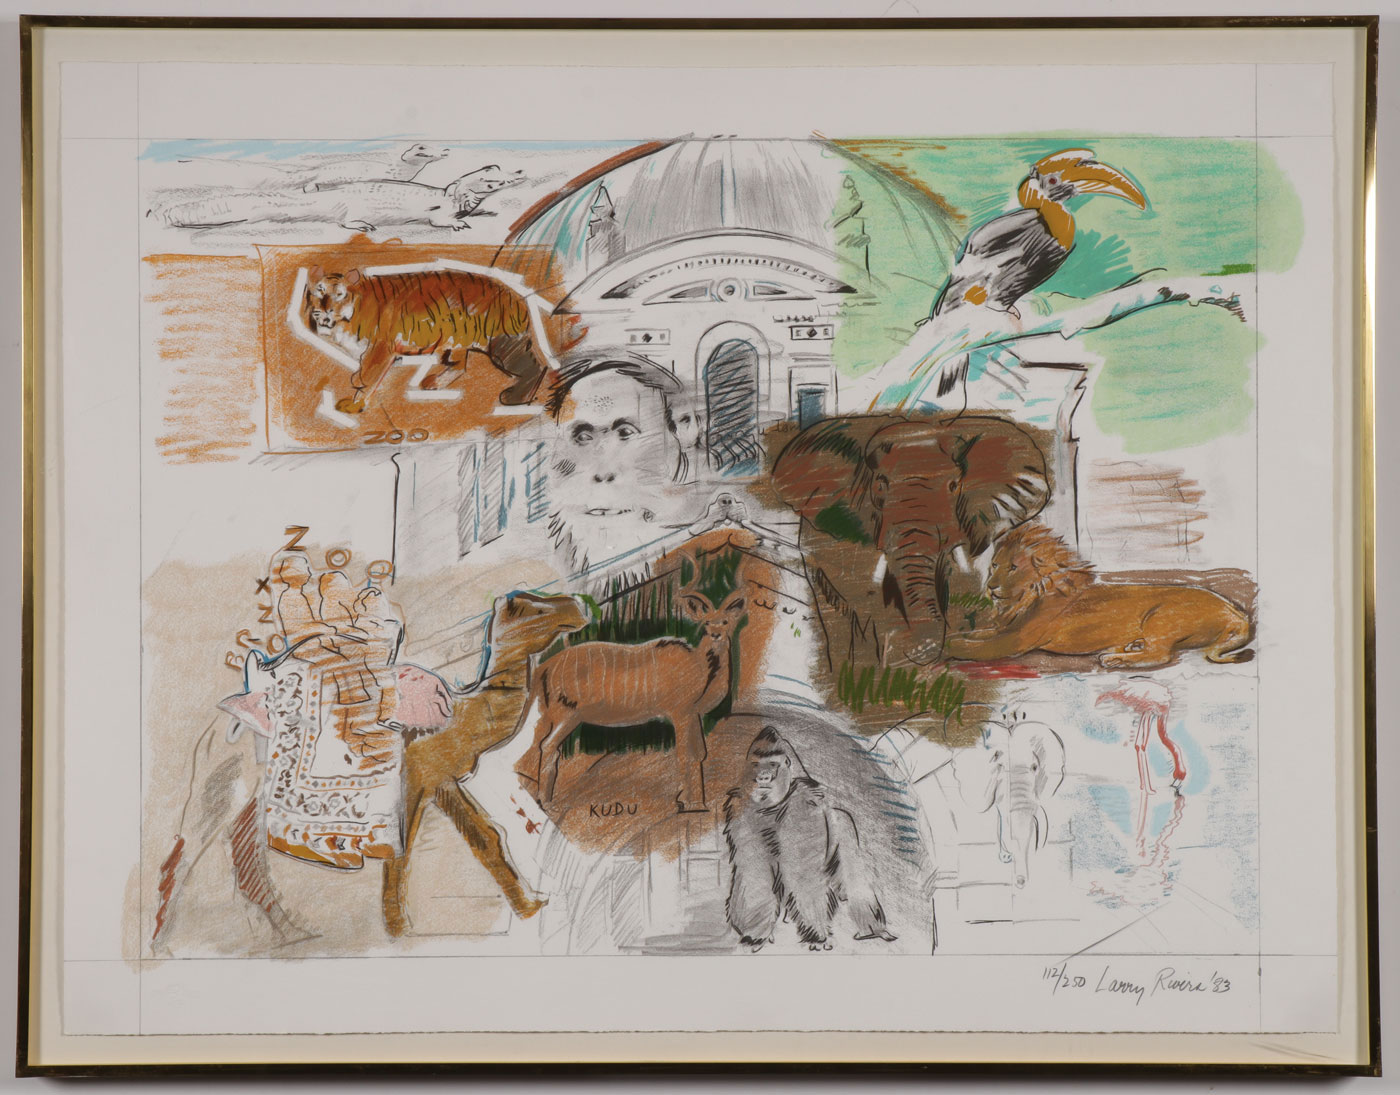 LARRY RIVERS SIGNED PRINT, 1983 - Image 2 of 4